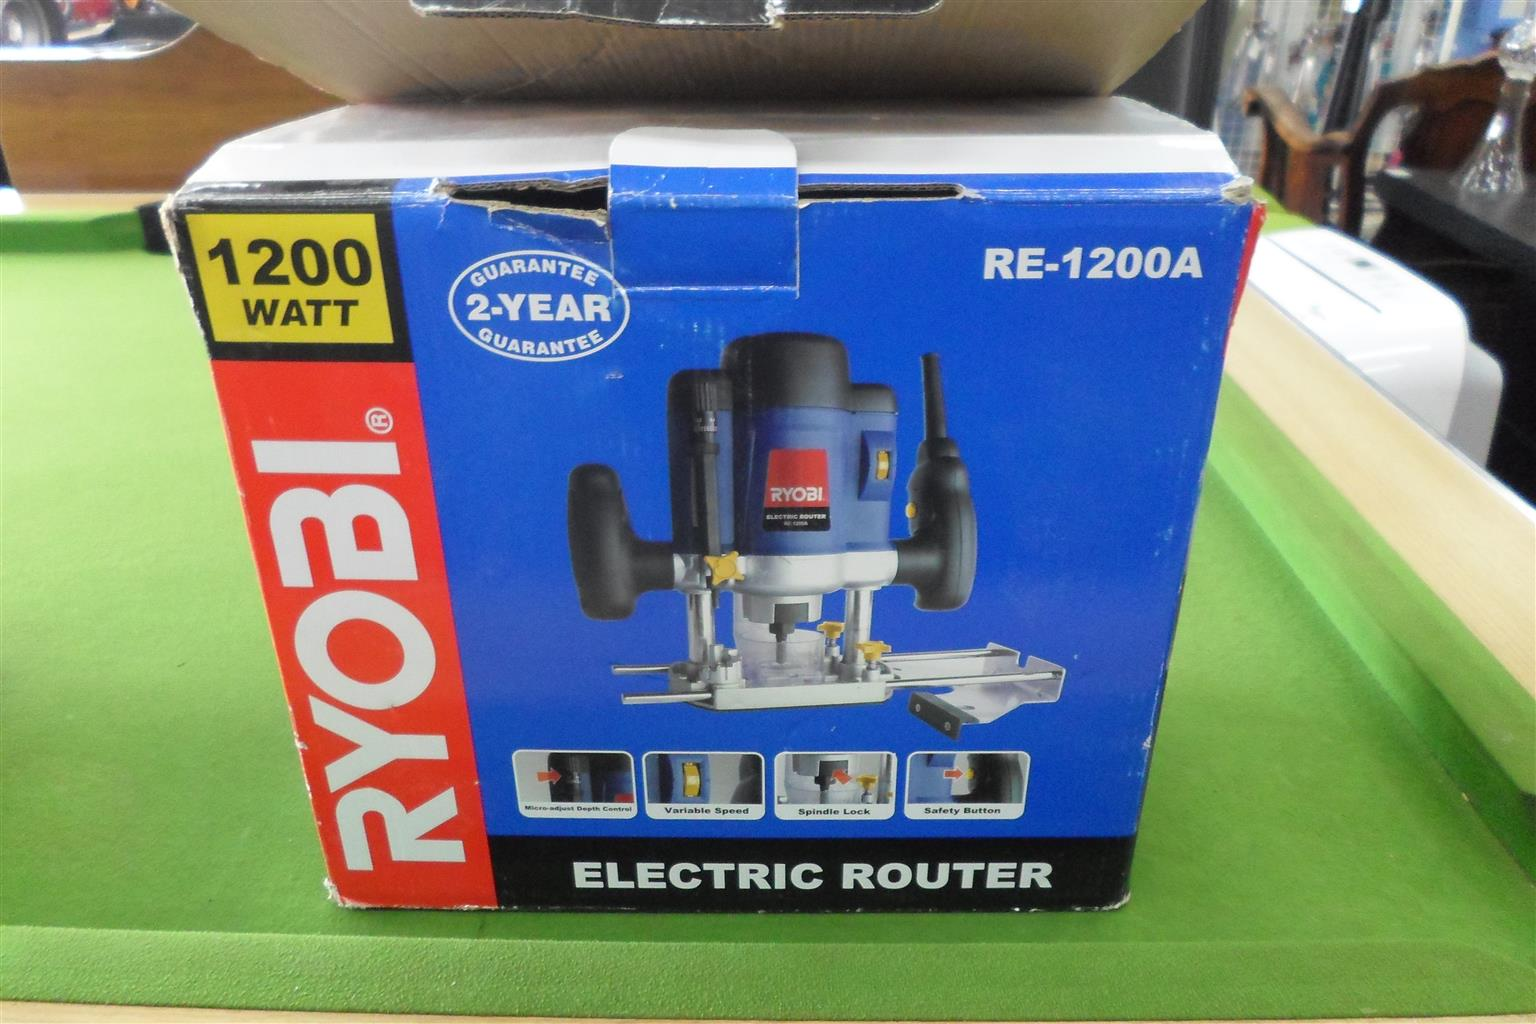 Ryobi RE-1200A Electric Router